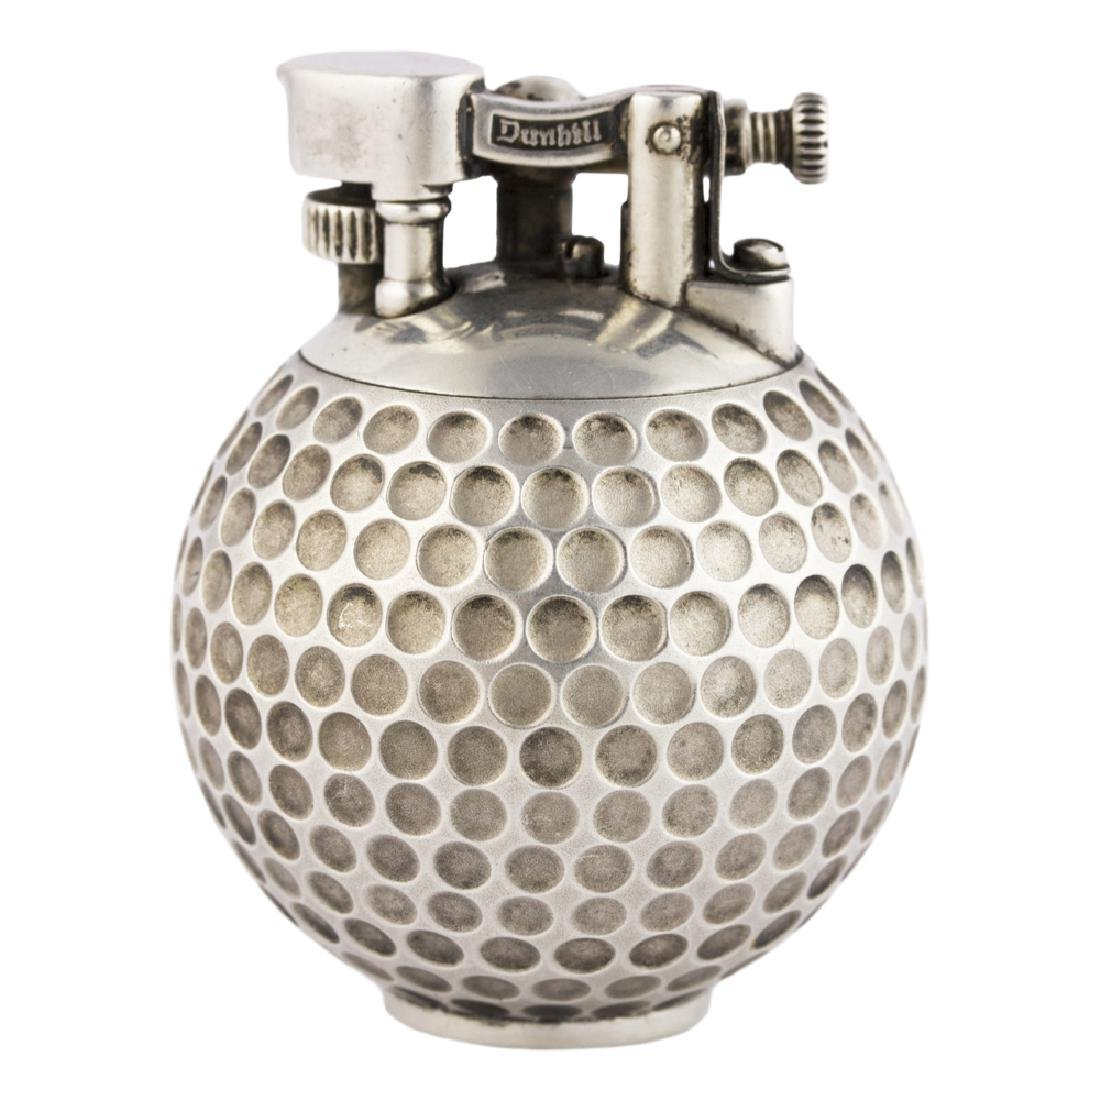 "A SOLID SILVER DUNHILL UNIQUE ""GOLF BALL"" TABLE LIGHTER"